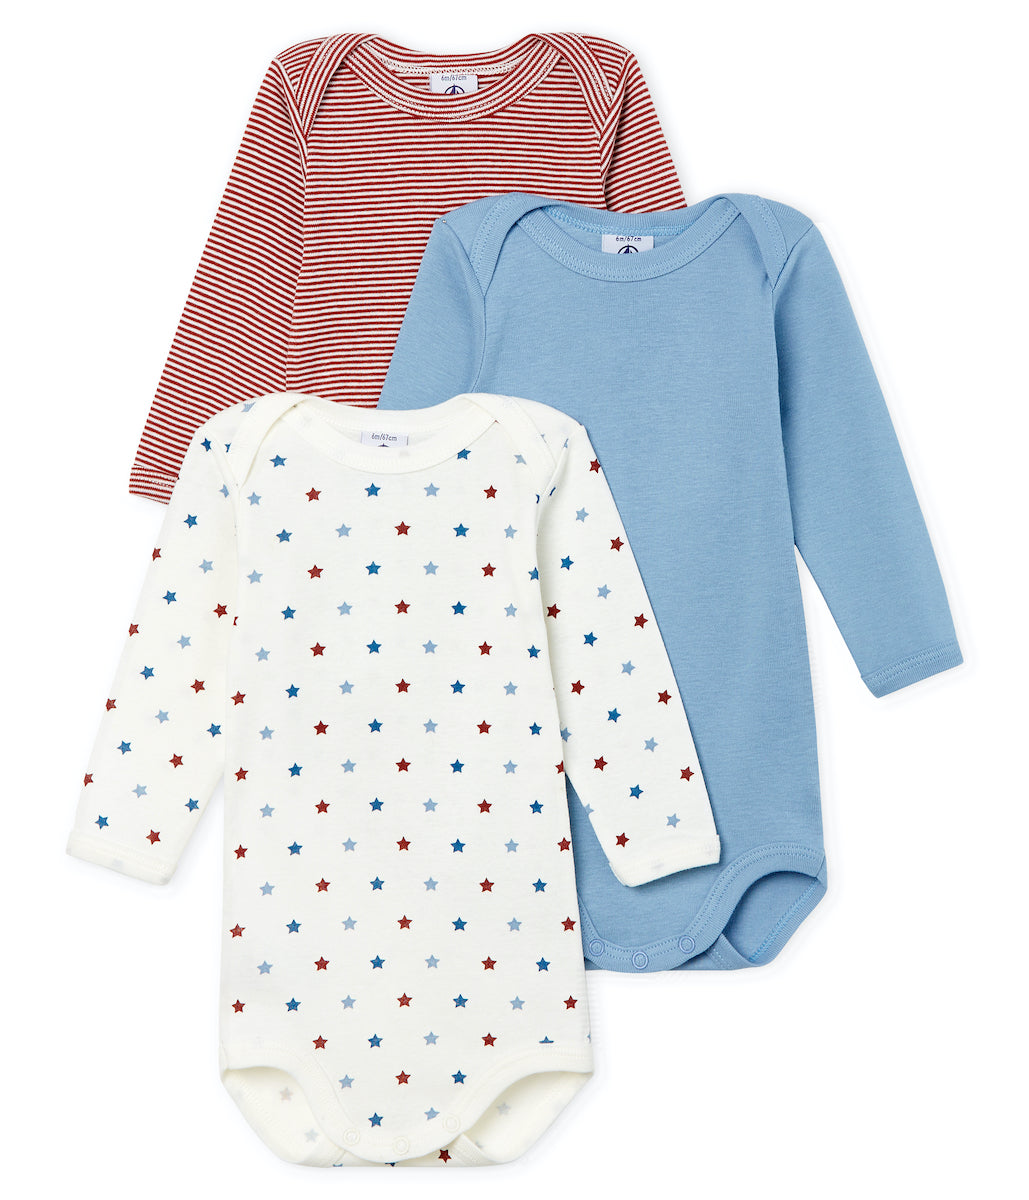 L/S Bodysuit 3pk | Blue/Star Print/Red Stripe